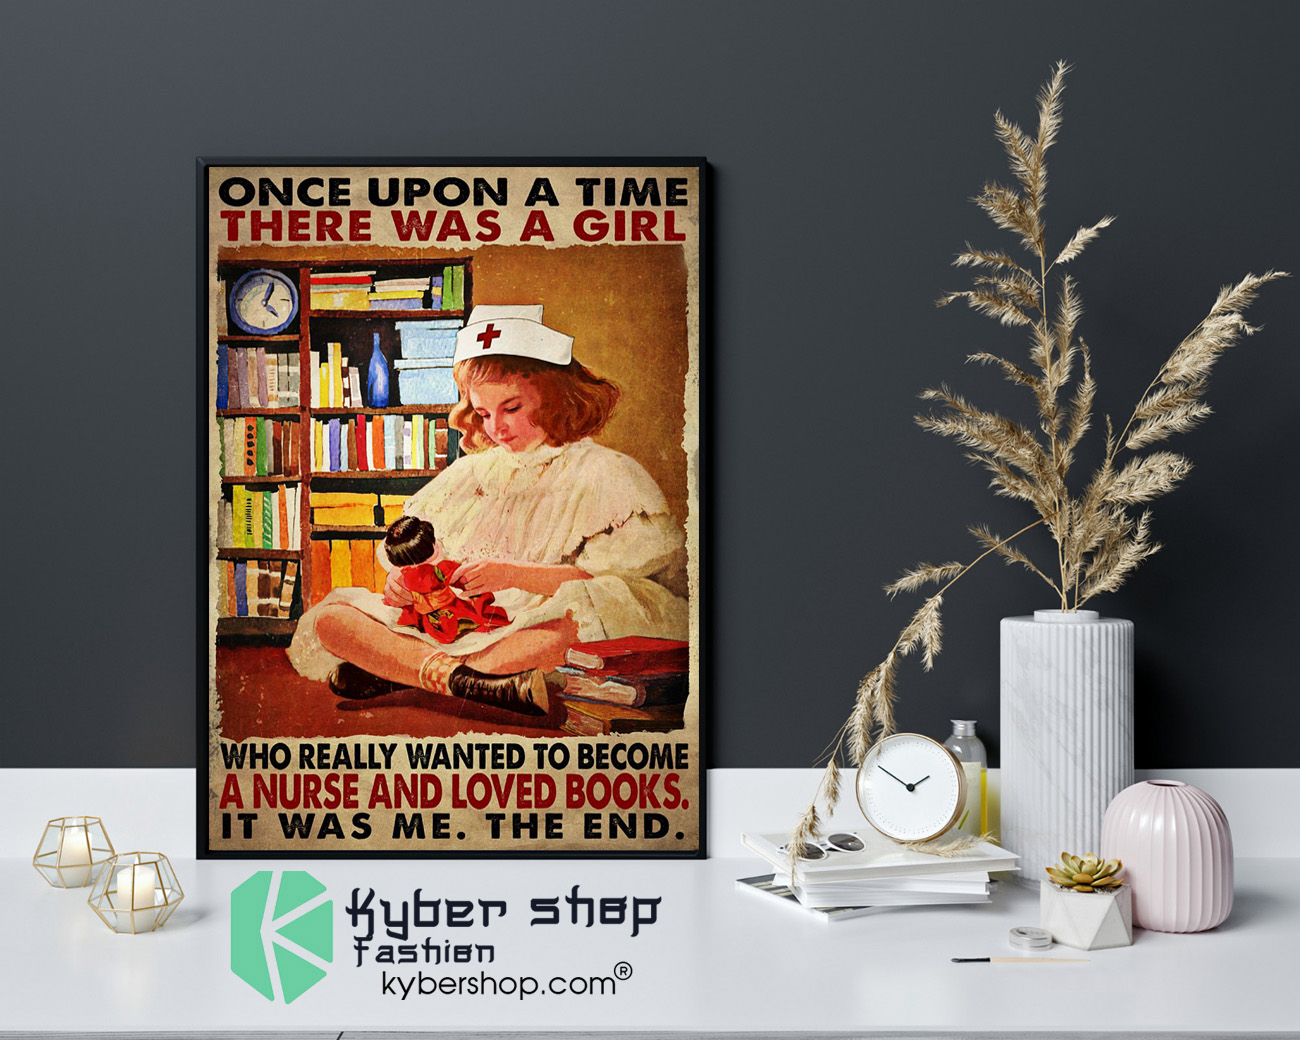 Once upon a time there was a girl who really wanted to become a nurse and loved books poster 4